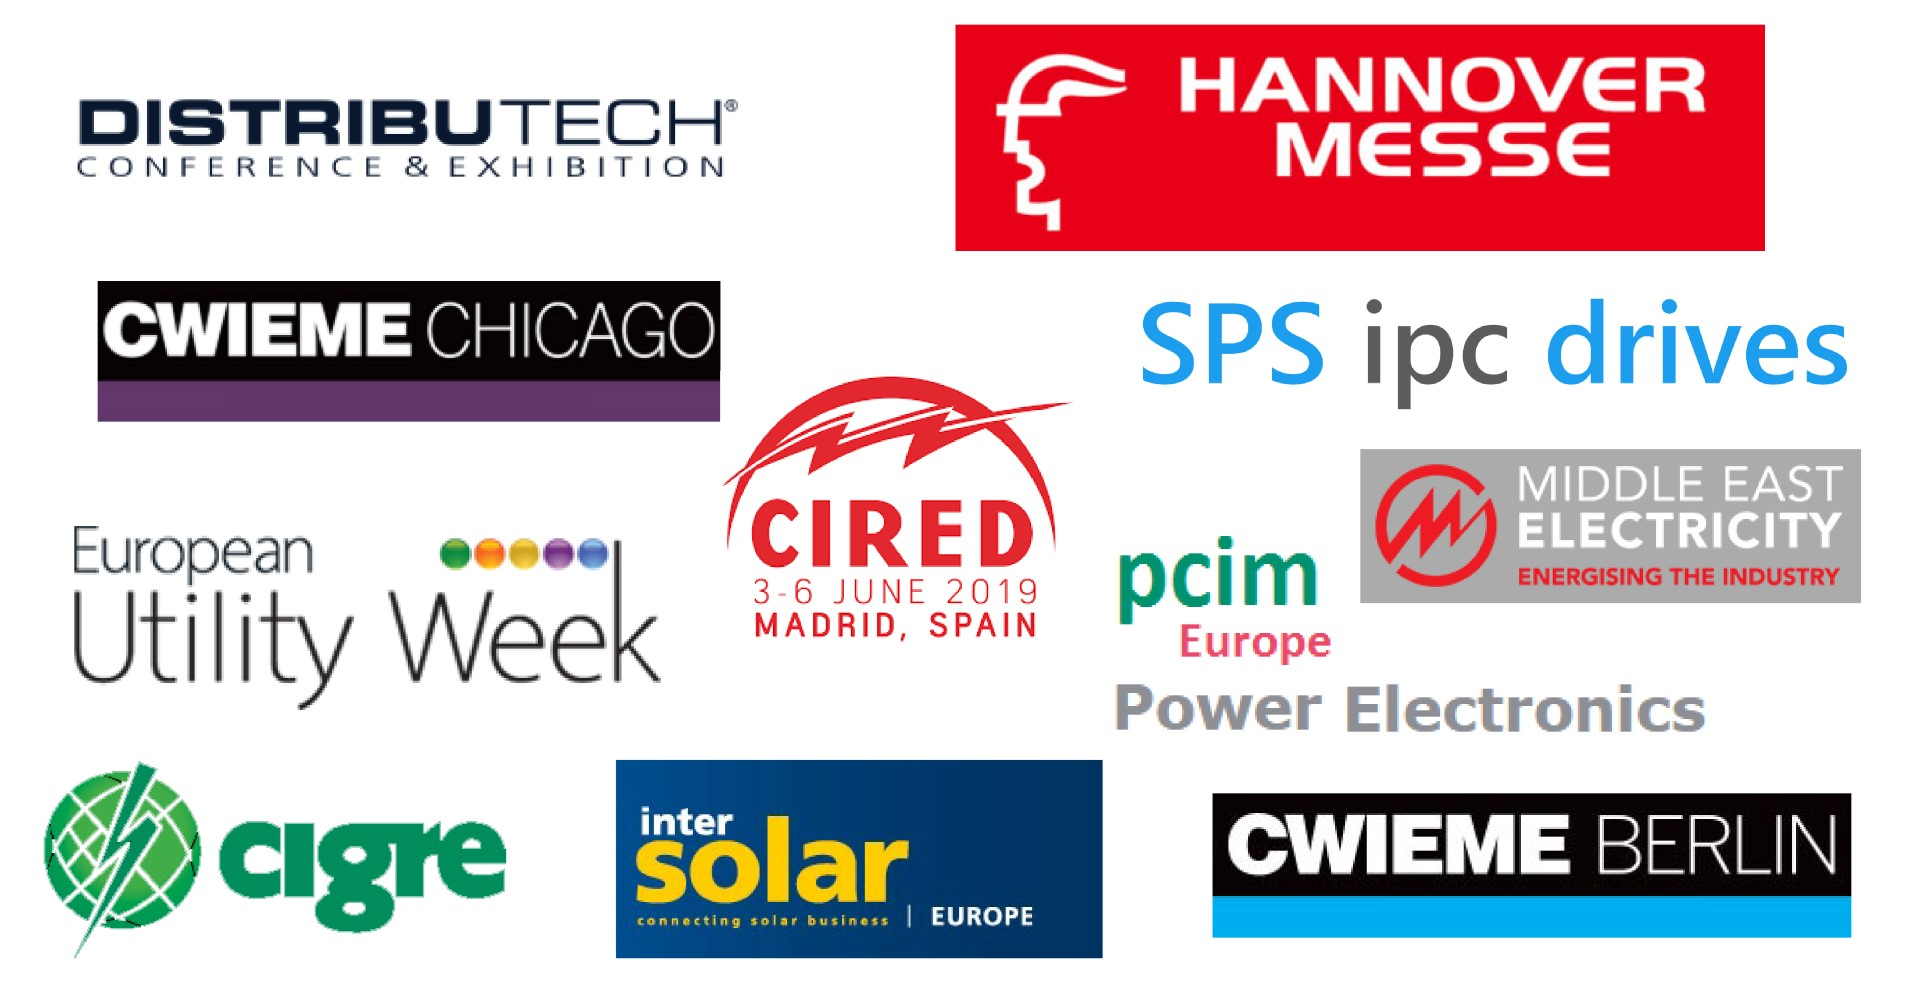 Trade_Fair, Distributech_Black, EUW, Hannover Messe, Intersolar, PCIM Europe, SPS, Middle-East Electricity, CWIEME_Berlin, CWIEME_Chicago, CIRED, CIGRE_New